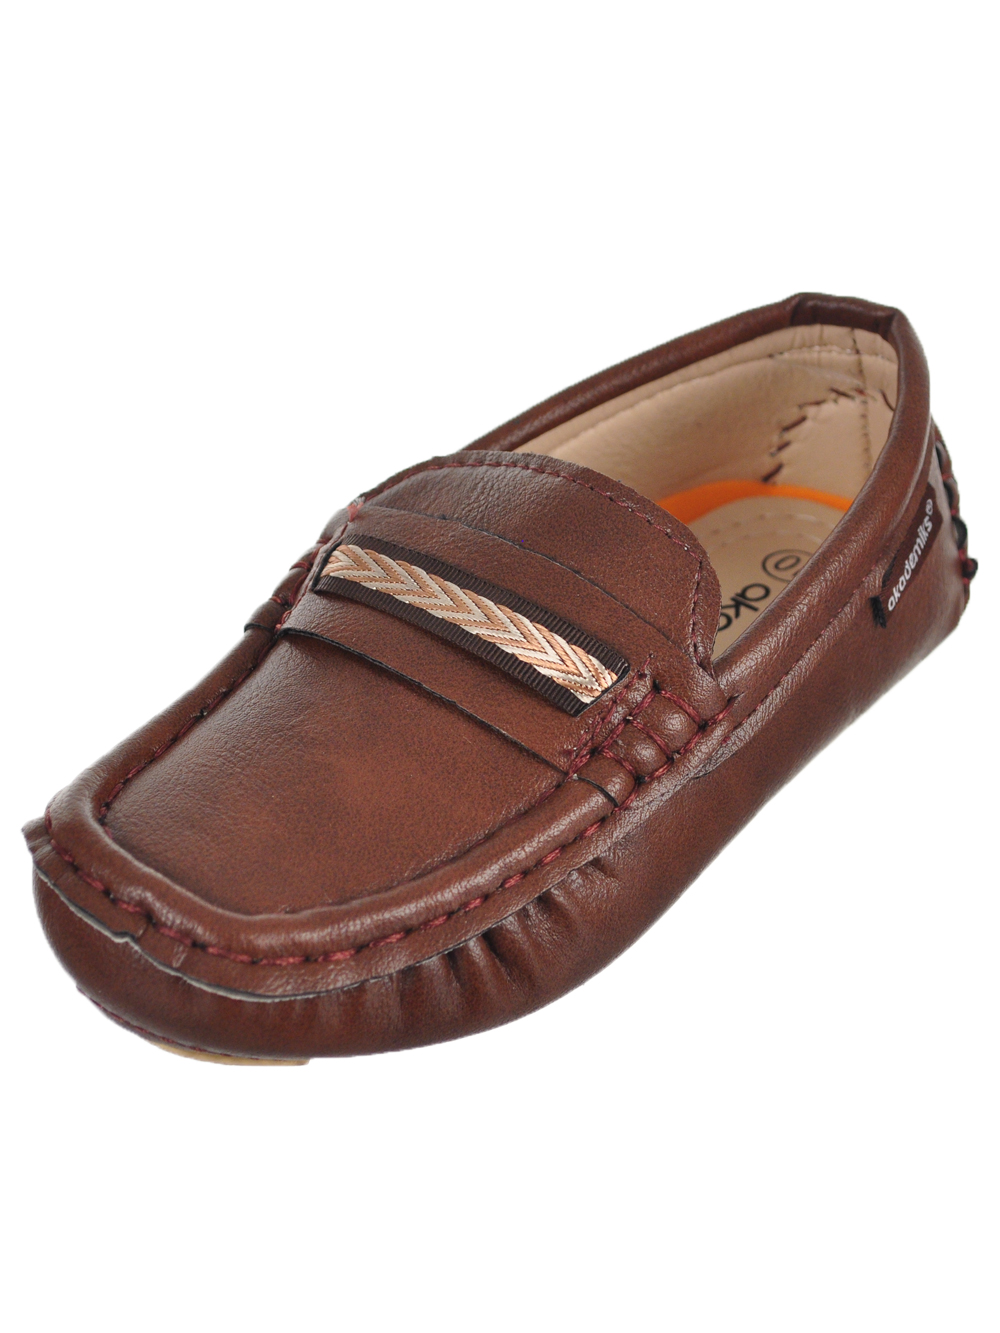 Akademiks Boys' Driving Loafers (Sizes 5 - 10)